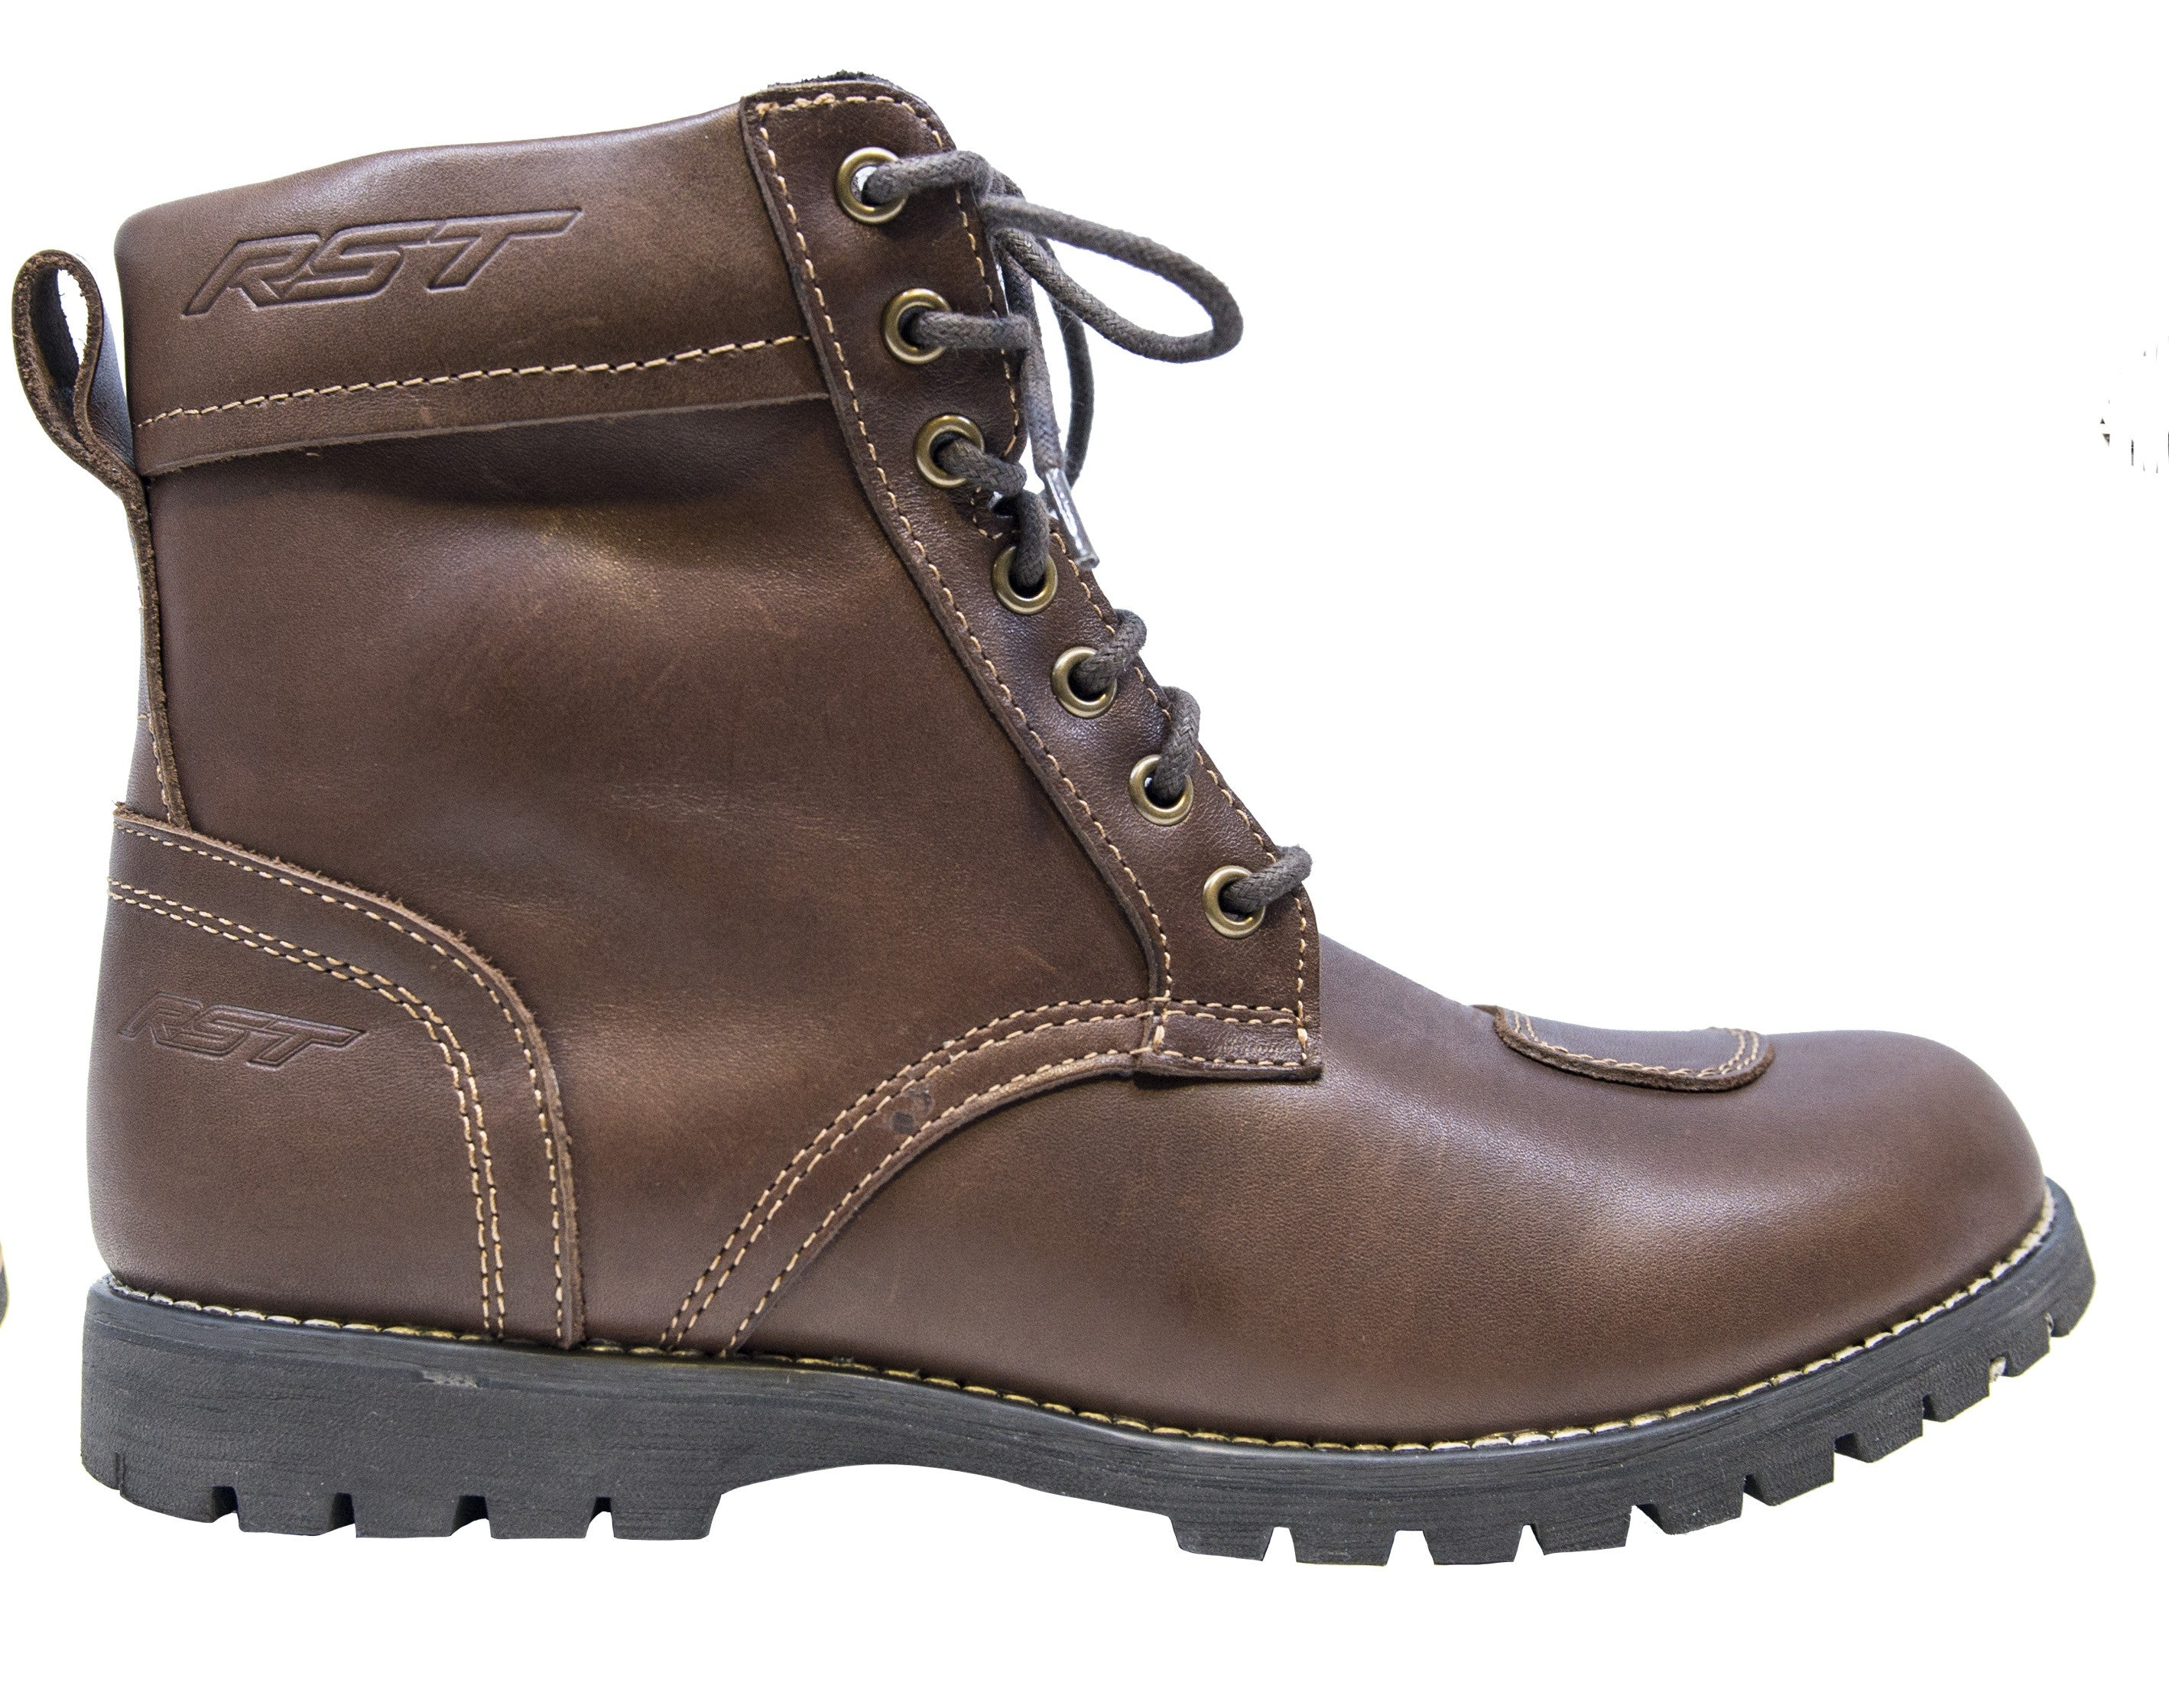 RST Roadster Boots Tan